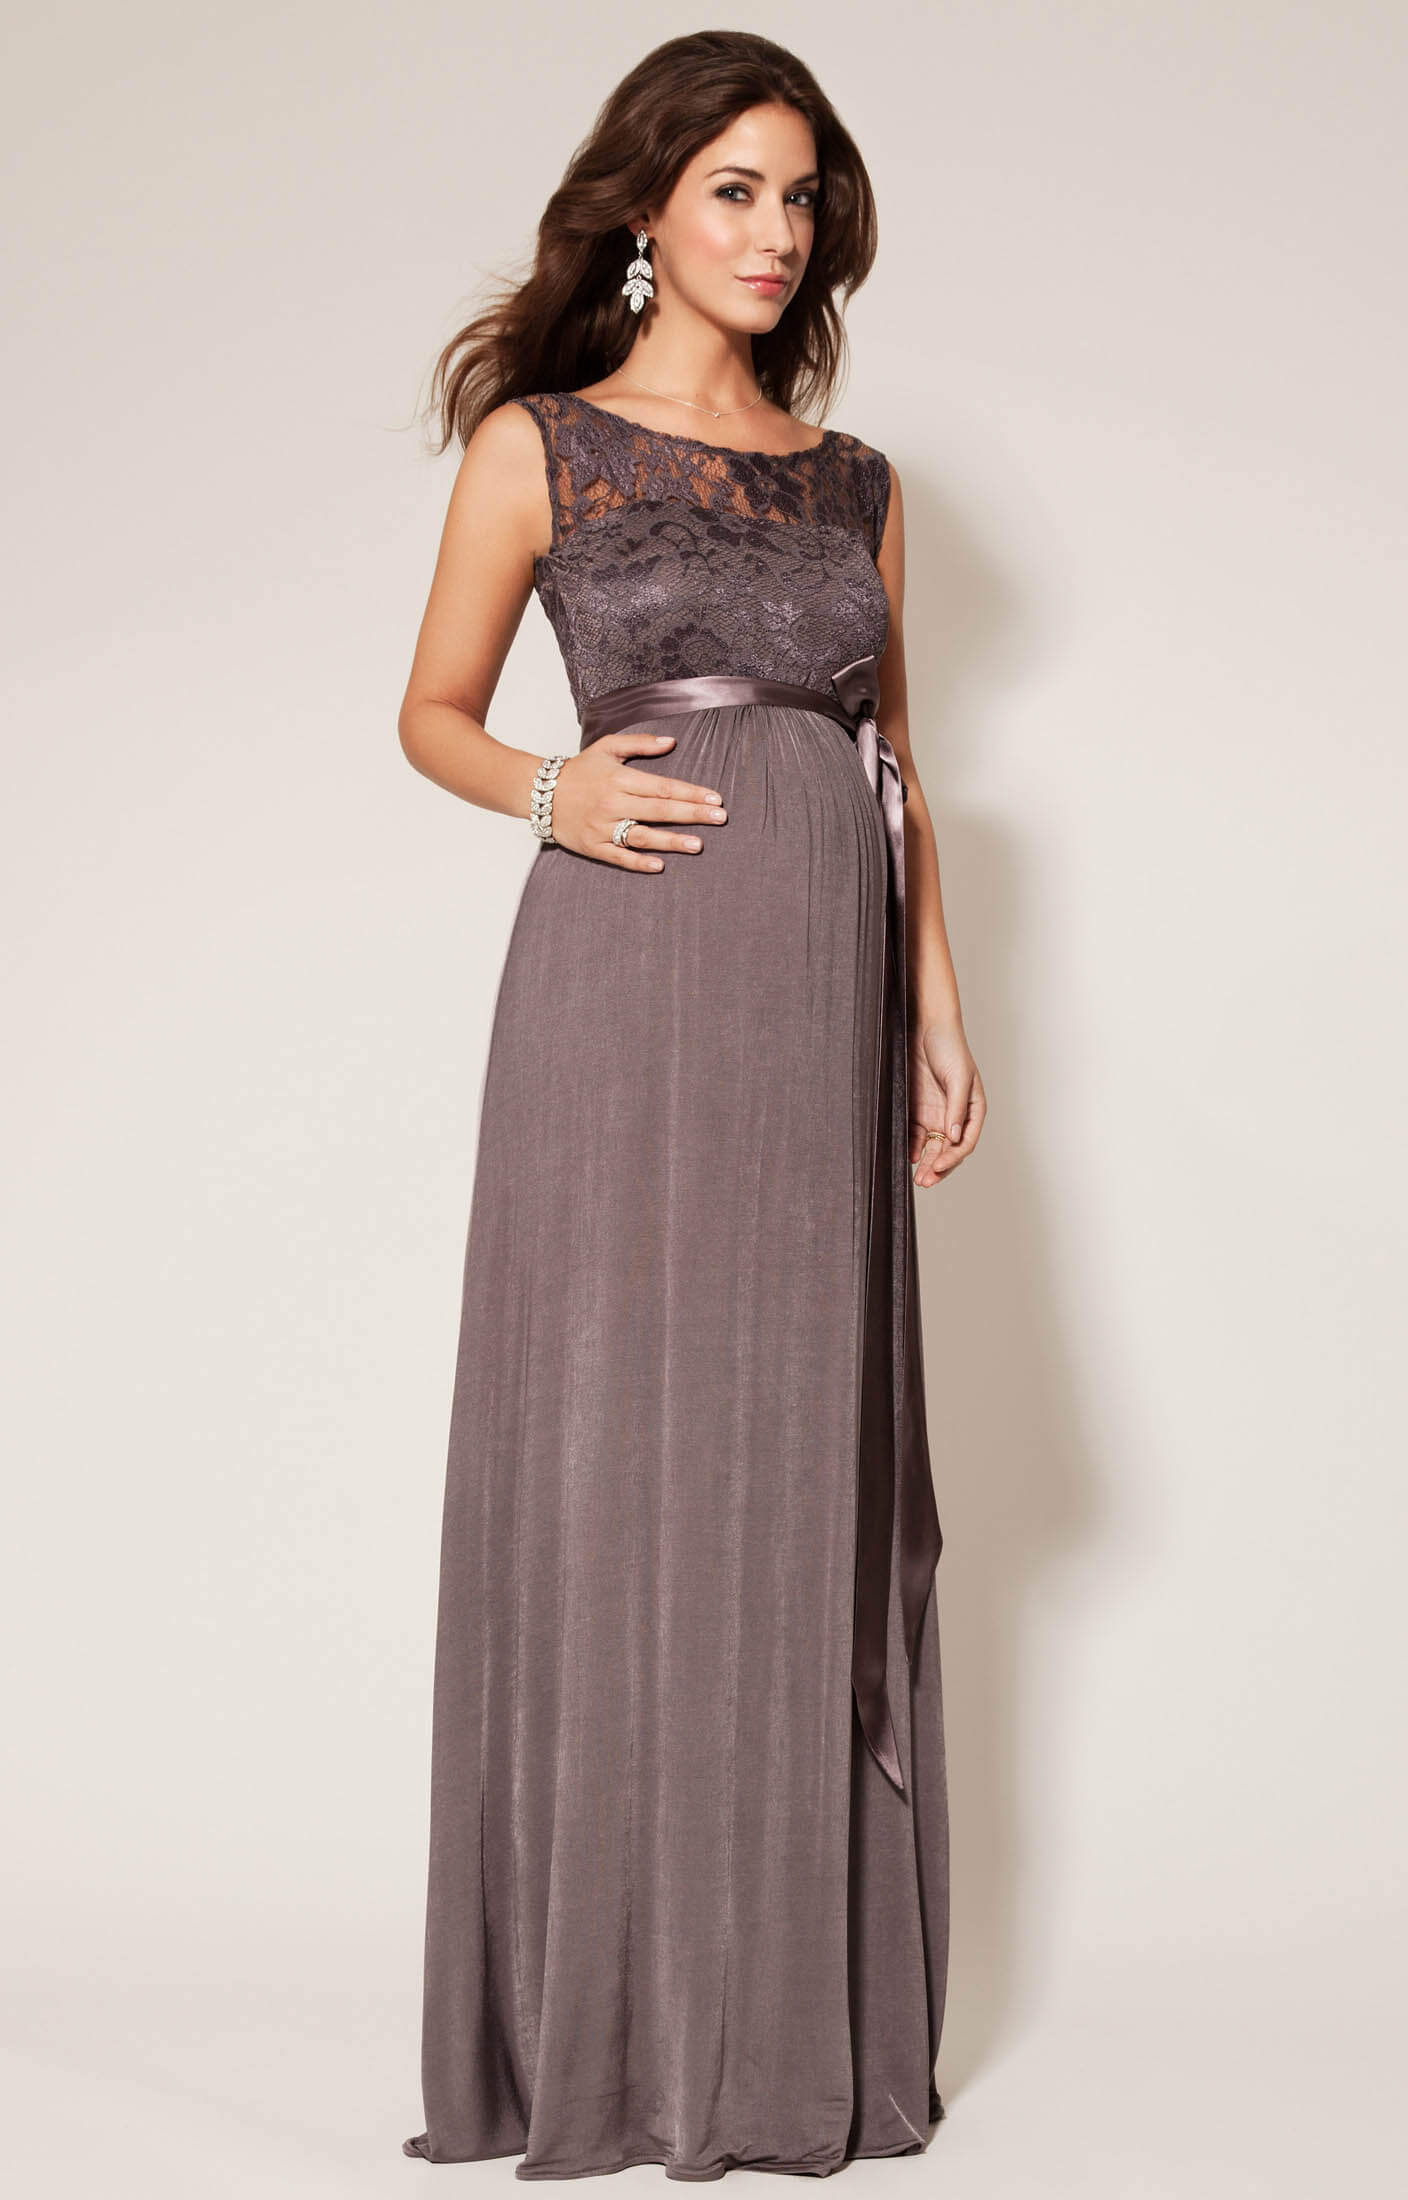 Robe de grossesse Valencia longue (Gris anthracite) by Tiffany Rose